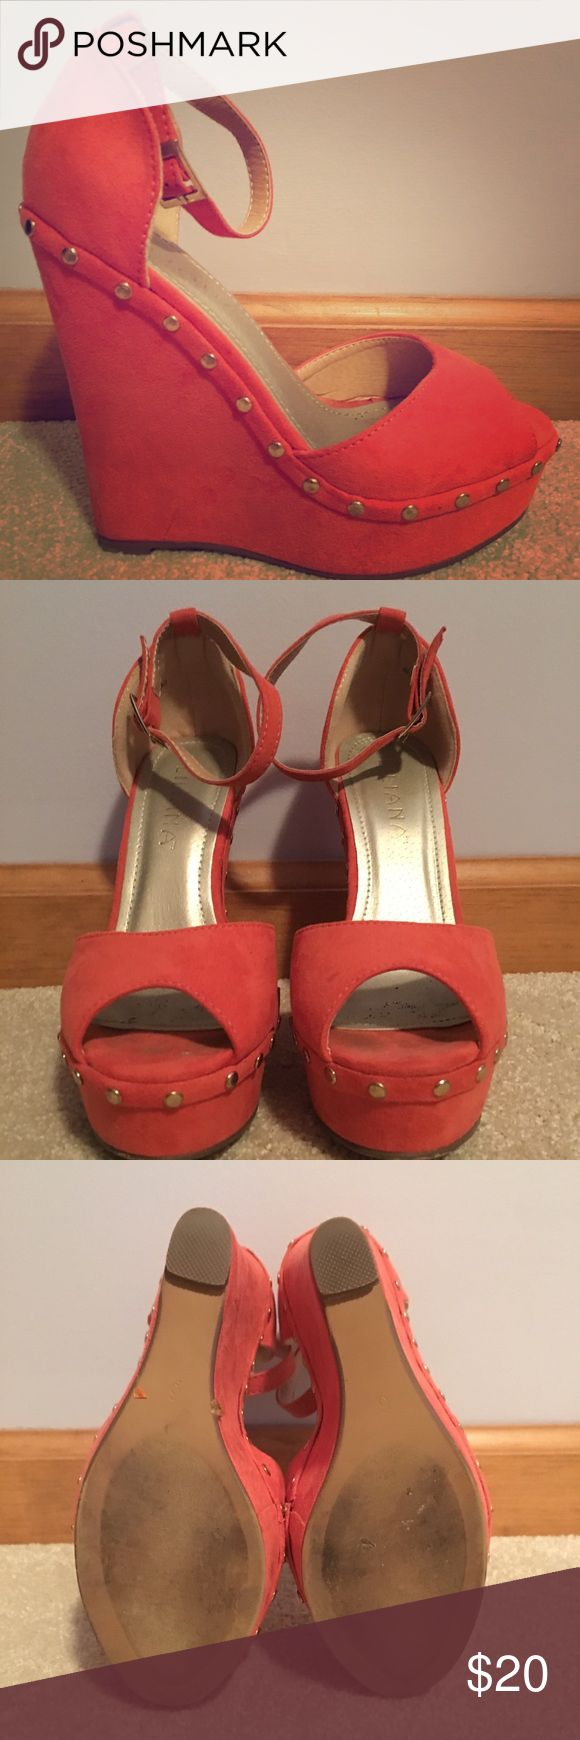 Liliana Suede Coral Wedge Sandal Worn once, in great condition! Suede wedge sandal with gold stud detail. Buckles at ankle. Liliana Shoes Wedges